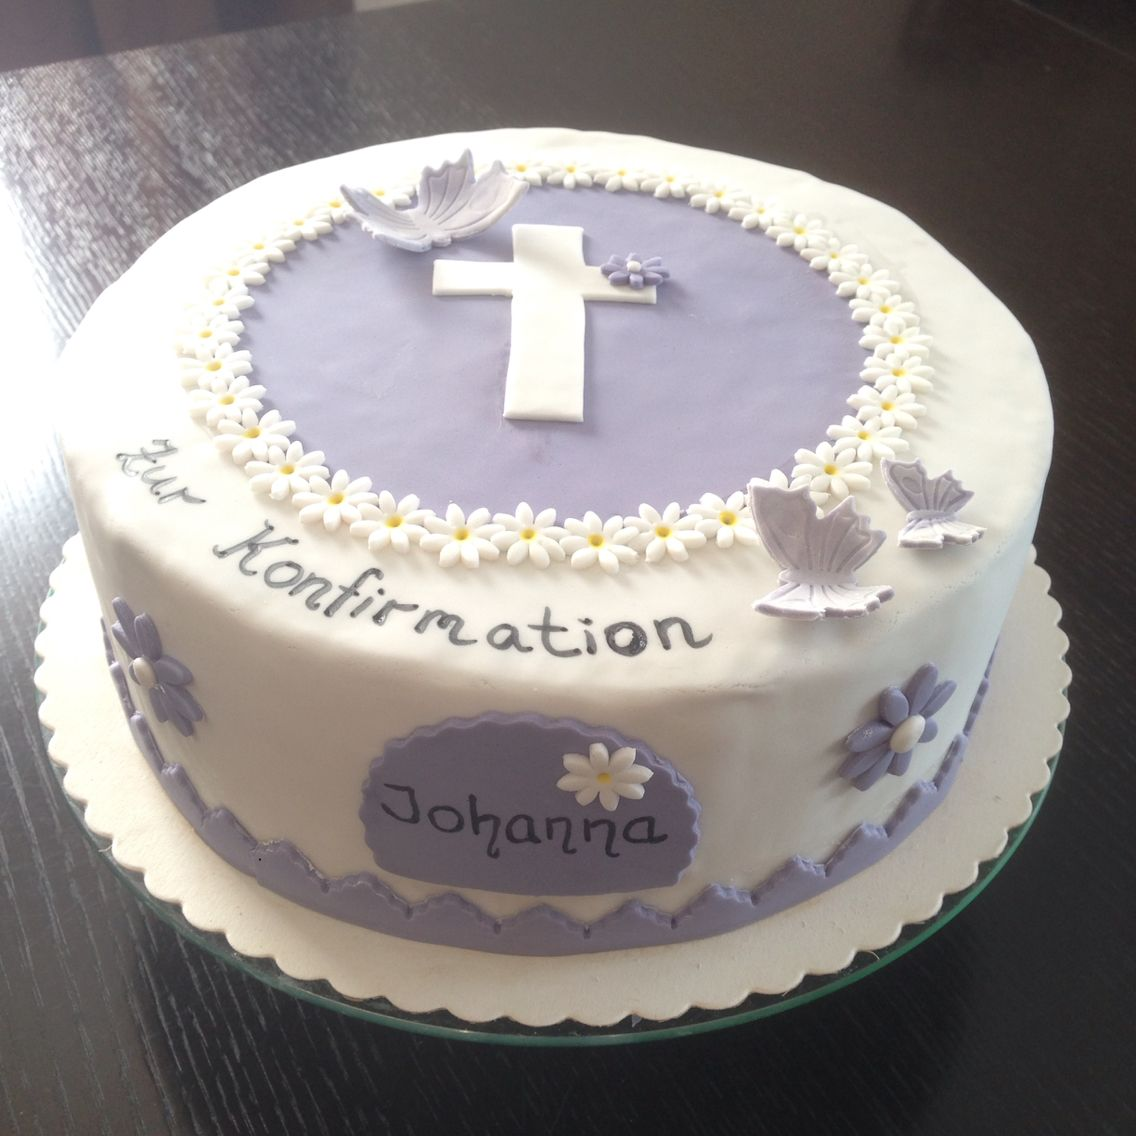 konfirmation torte rippijuhlat pinterest communion amazing cakes and cake. Black Bedroom Furniture Sets. Home Design Ideas